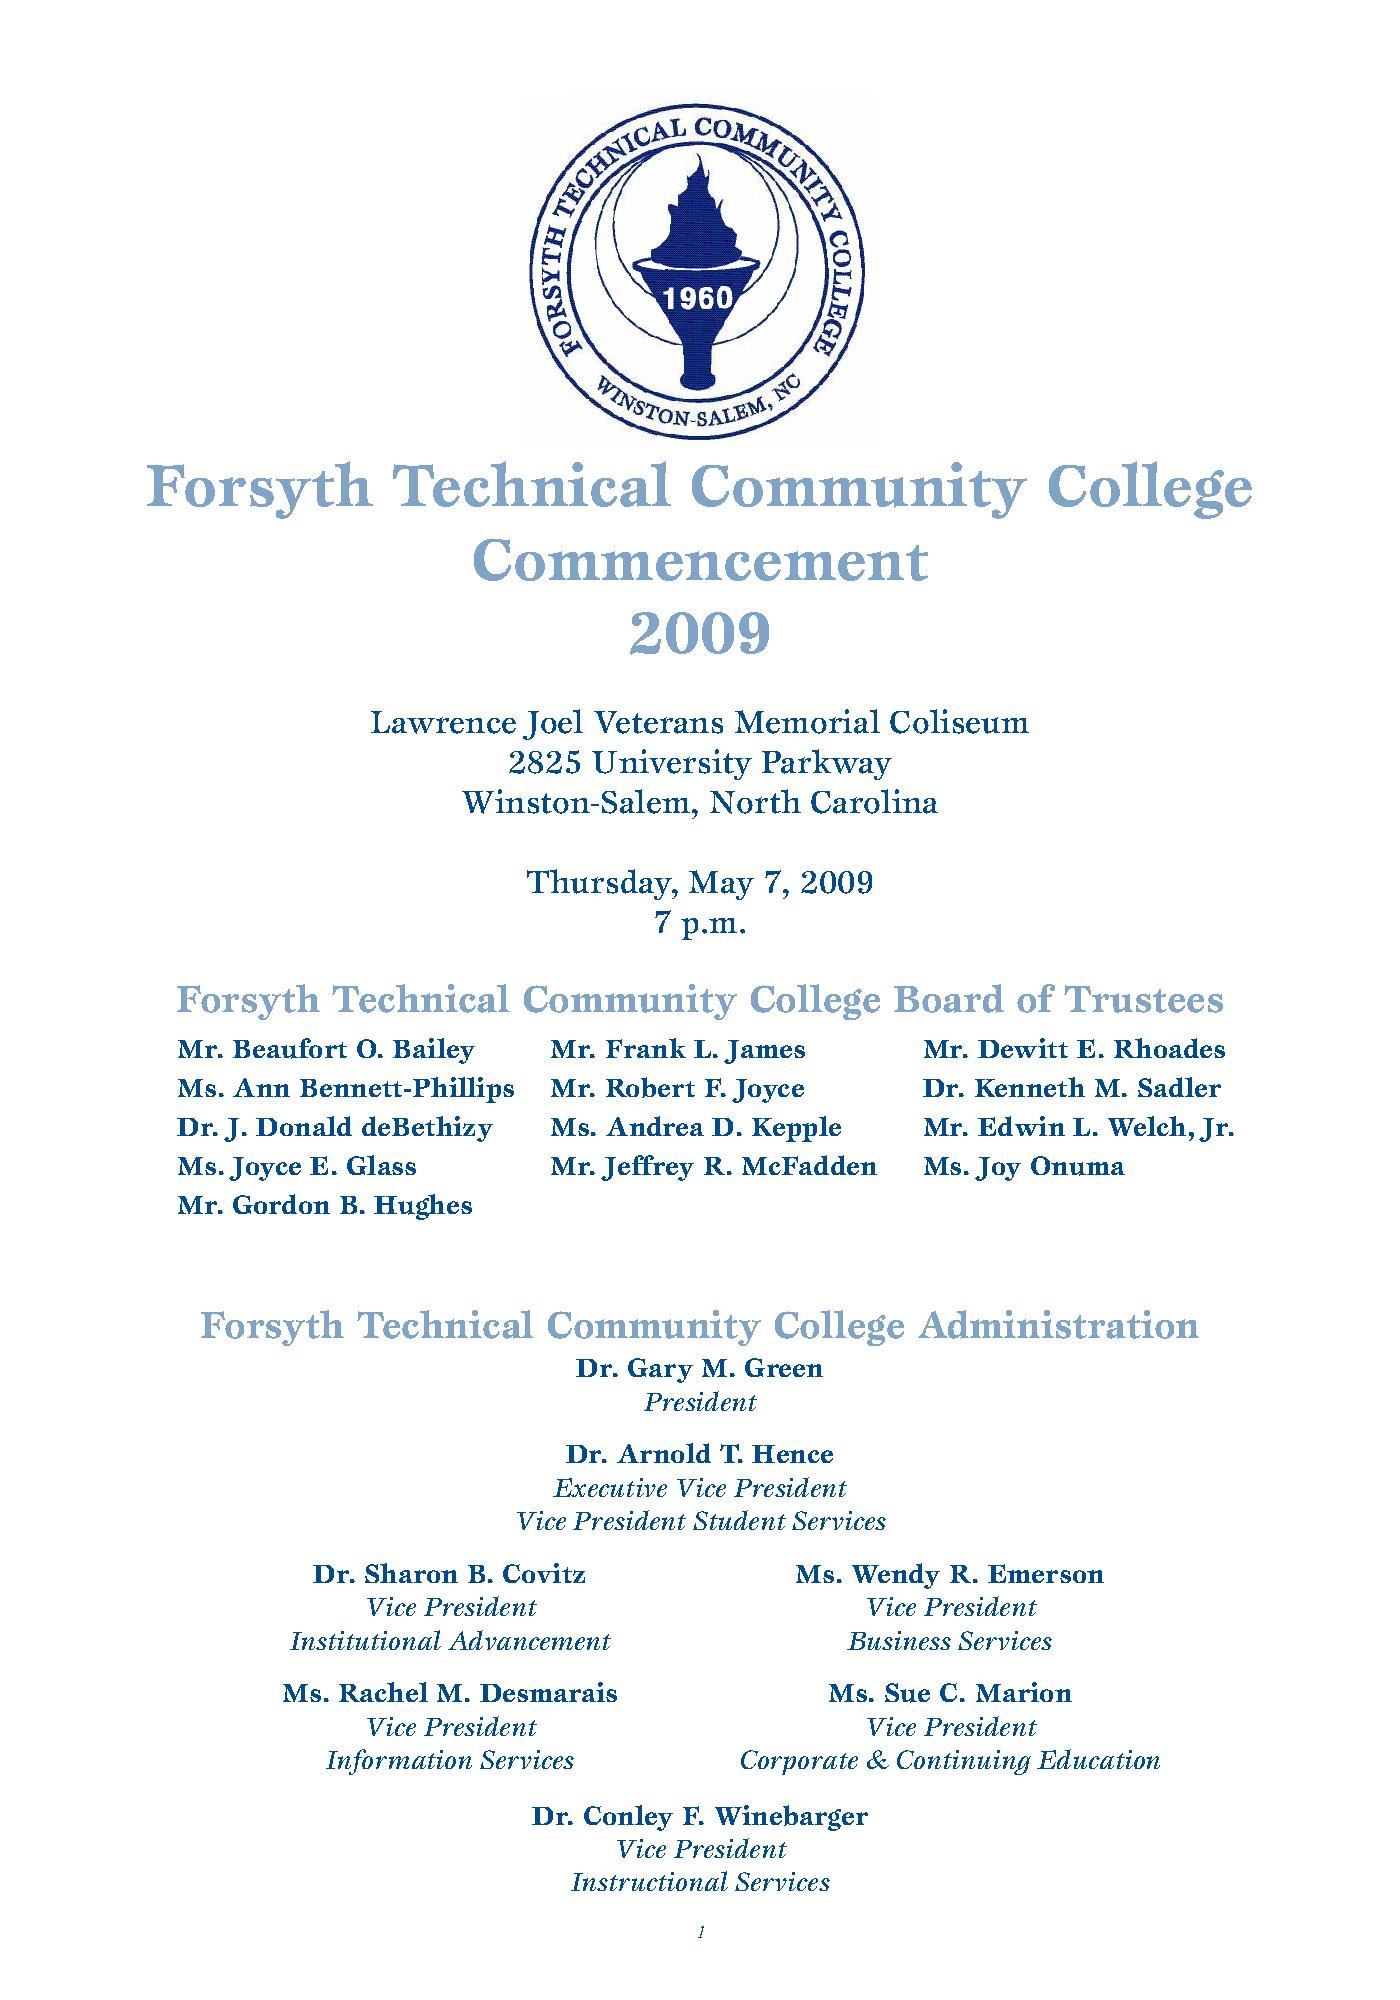 Forsyth Technical Community College Commencement 2009 May 7 State Publications Ii North Carolina Digital Collections